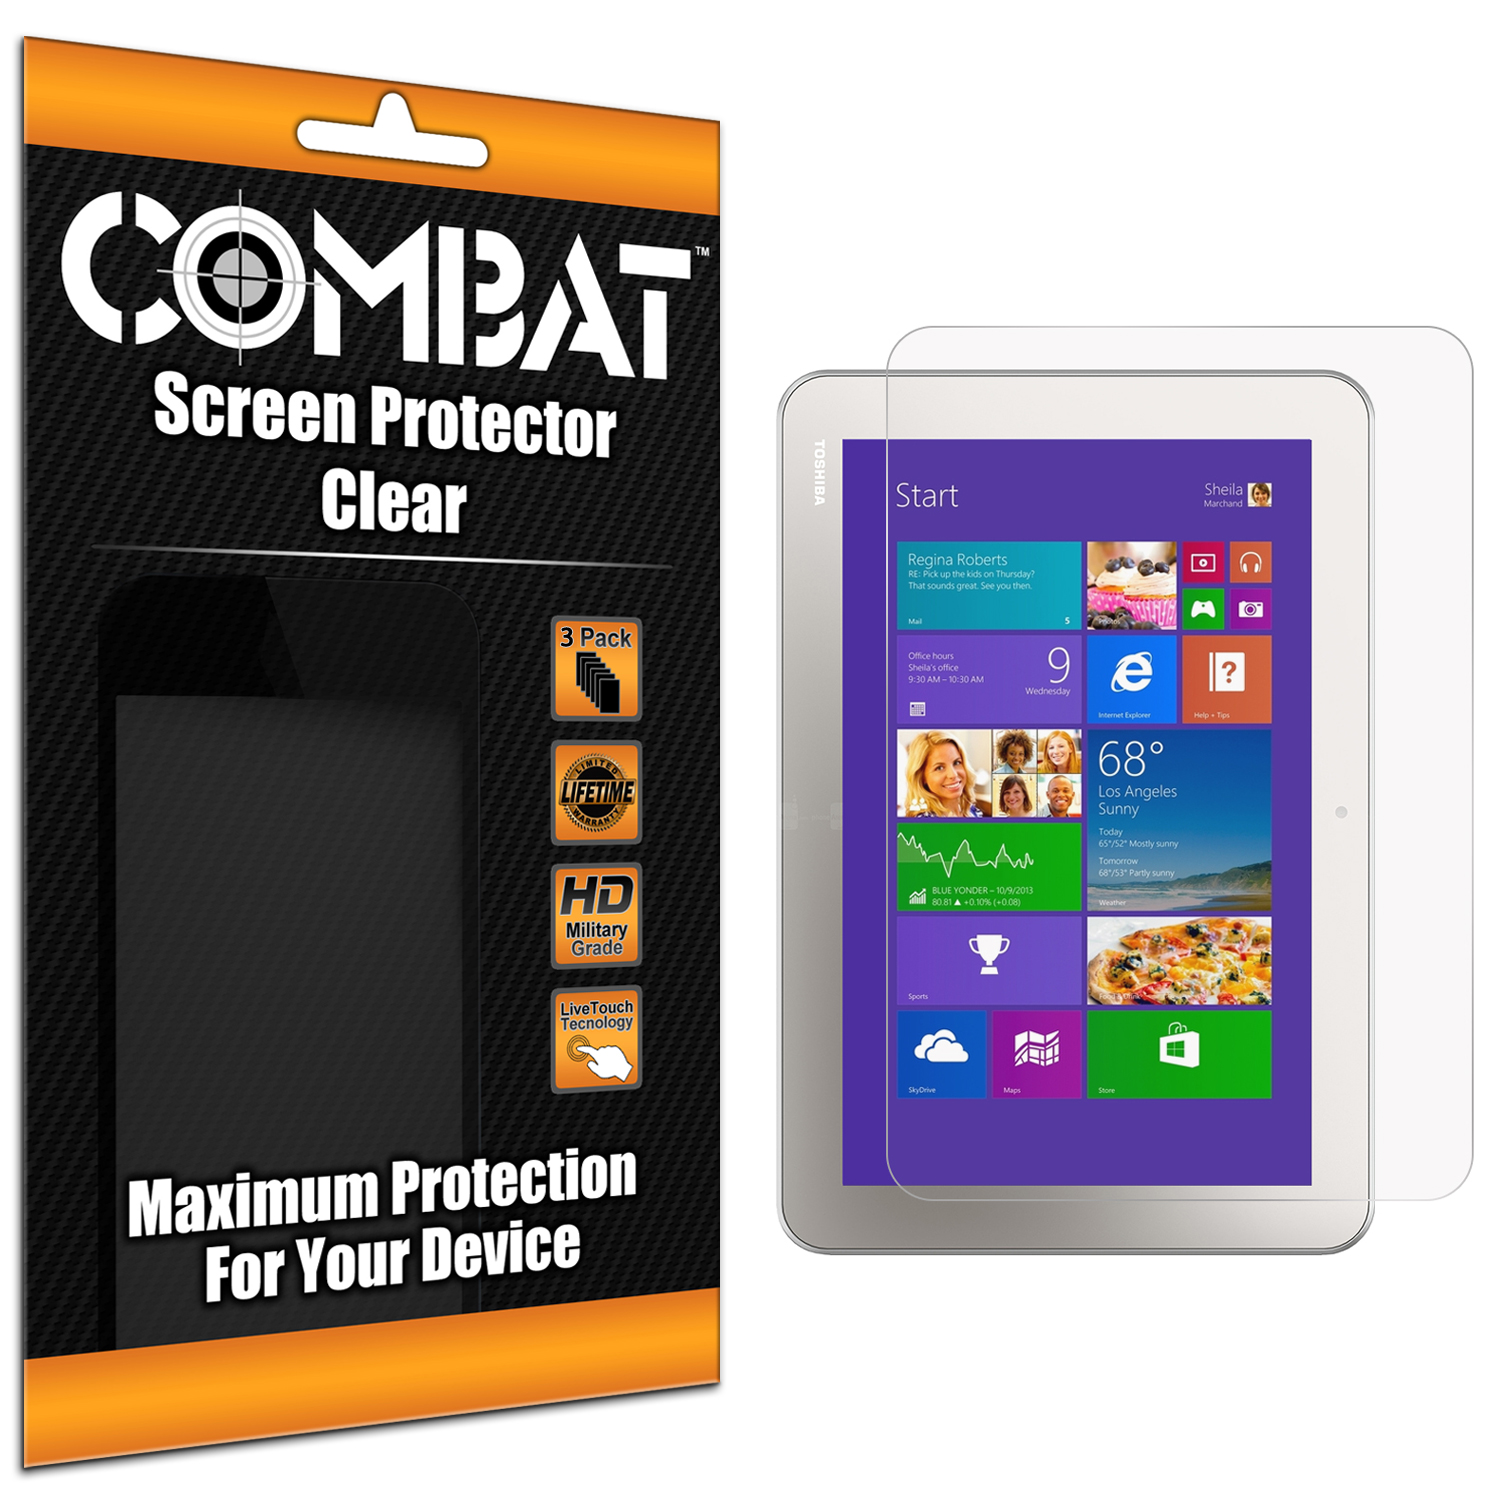 Toshiba Encore 2 10.1 Clear Combat 6 Pack HD Clear Screen Protector